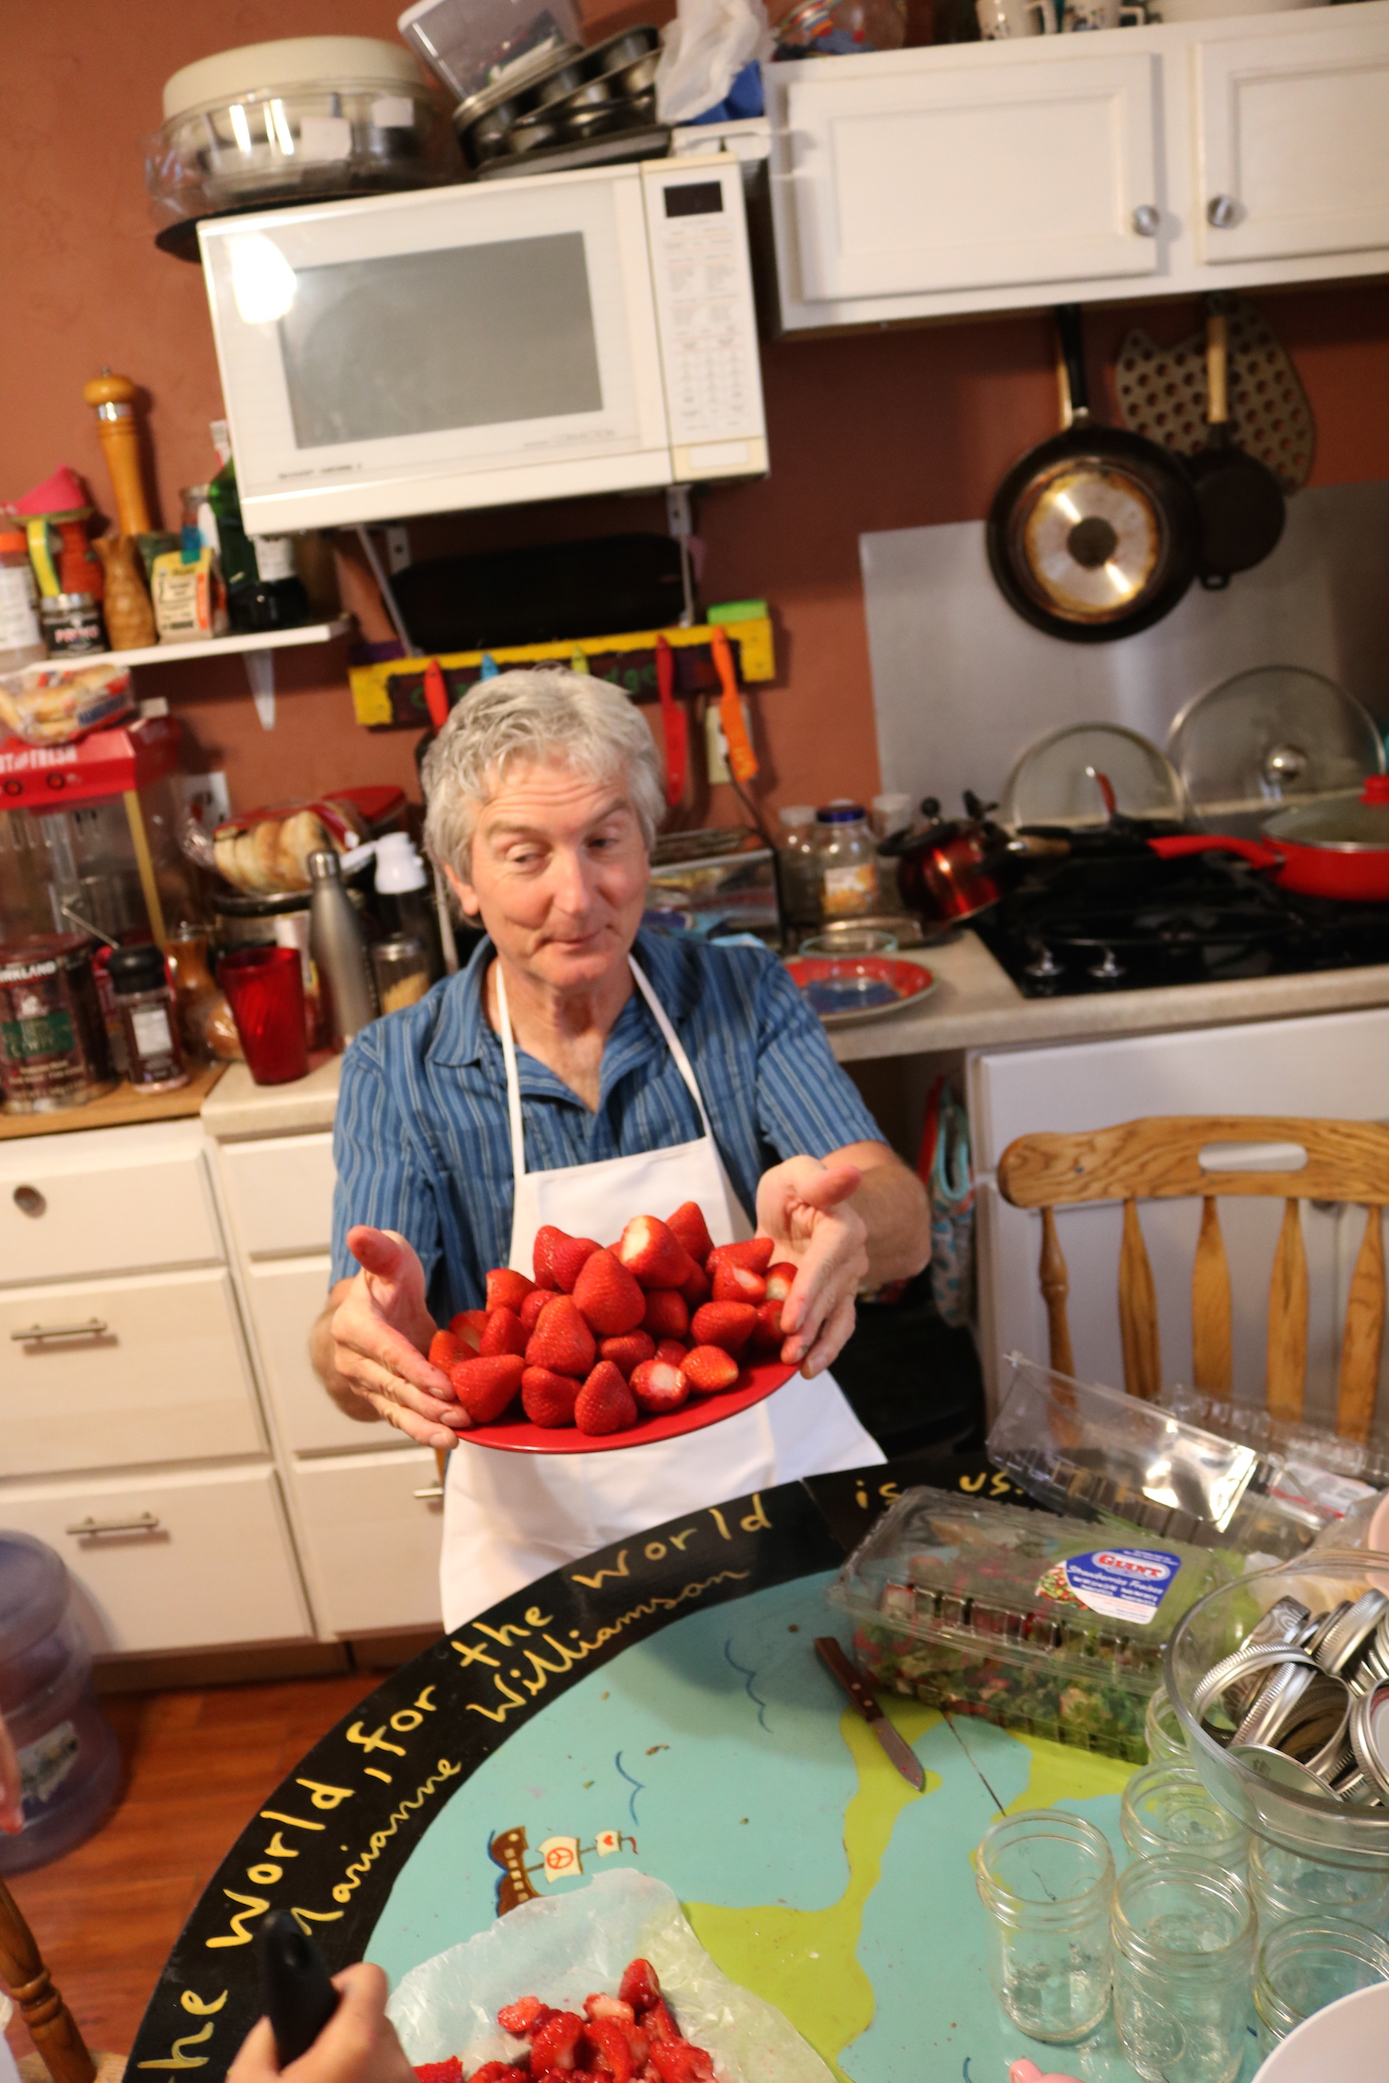 weeds in the am making jam in the pm pueblo house jimi shows off the berries